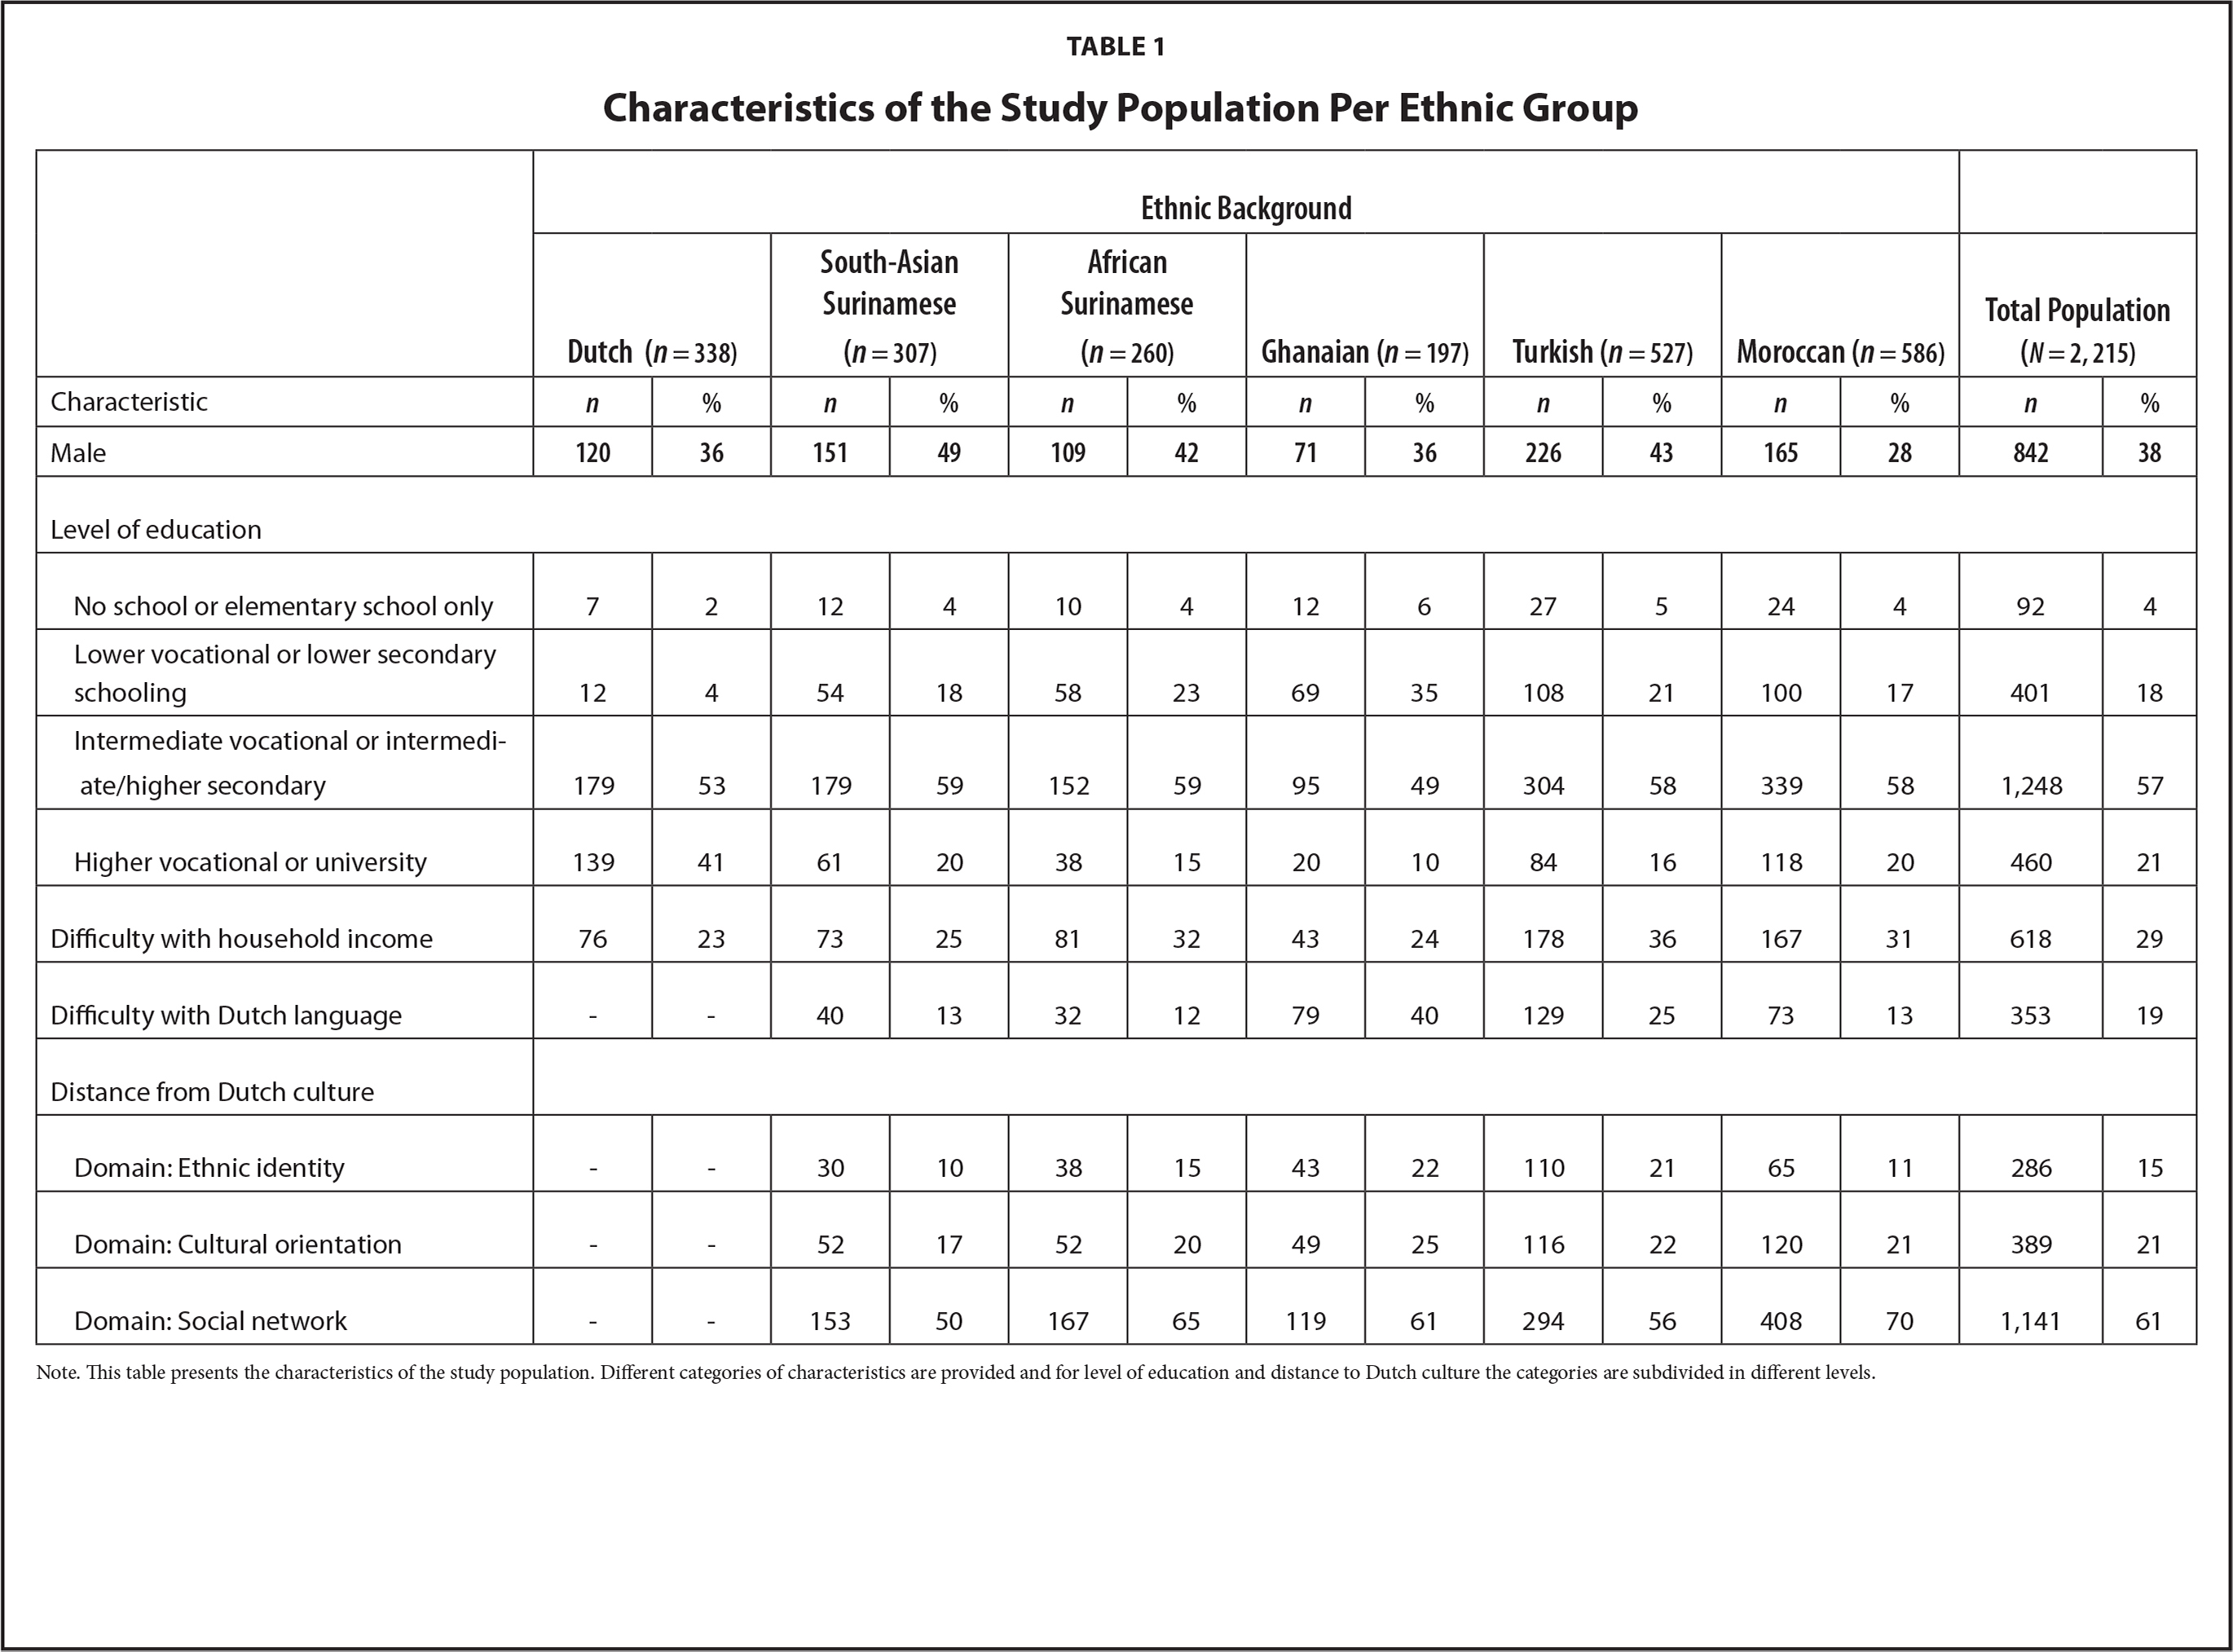 Characteristics of the Study Population Per Ethnic Group